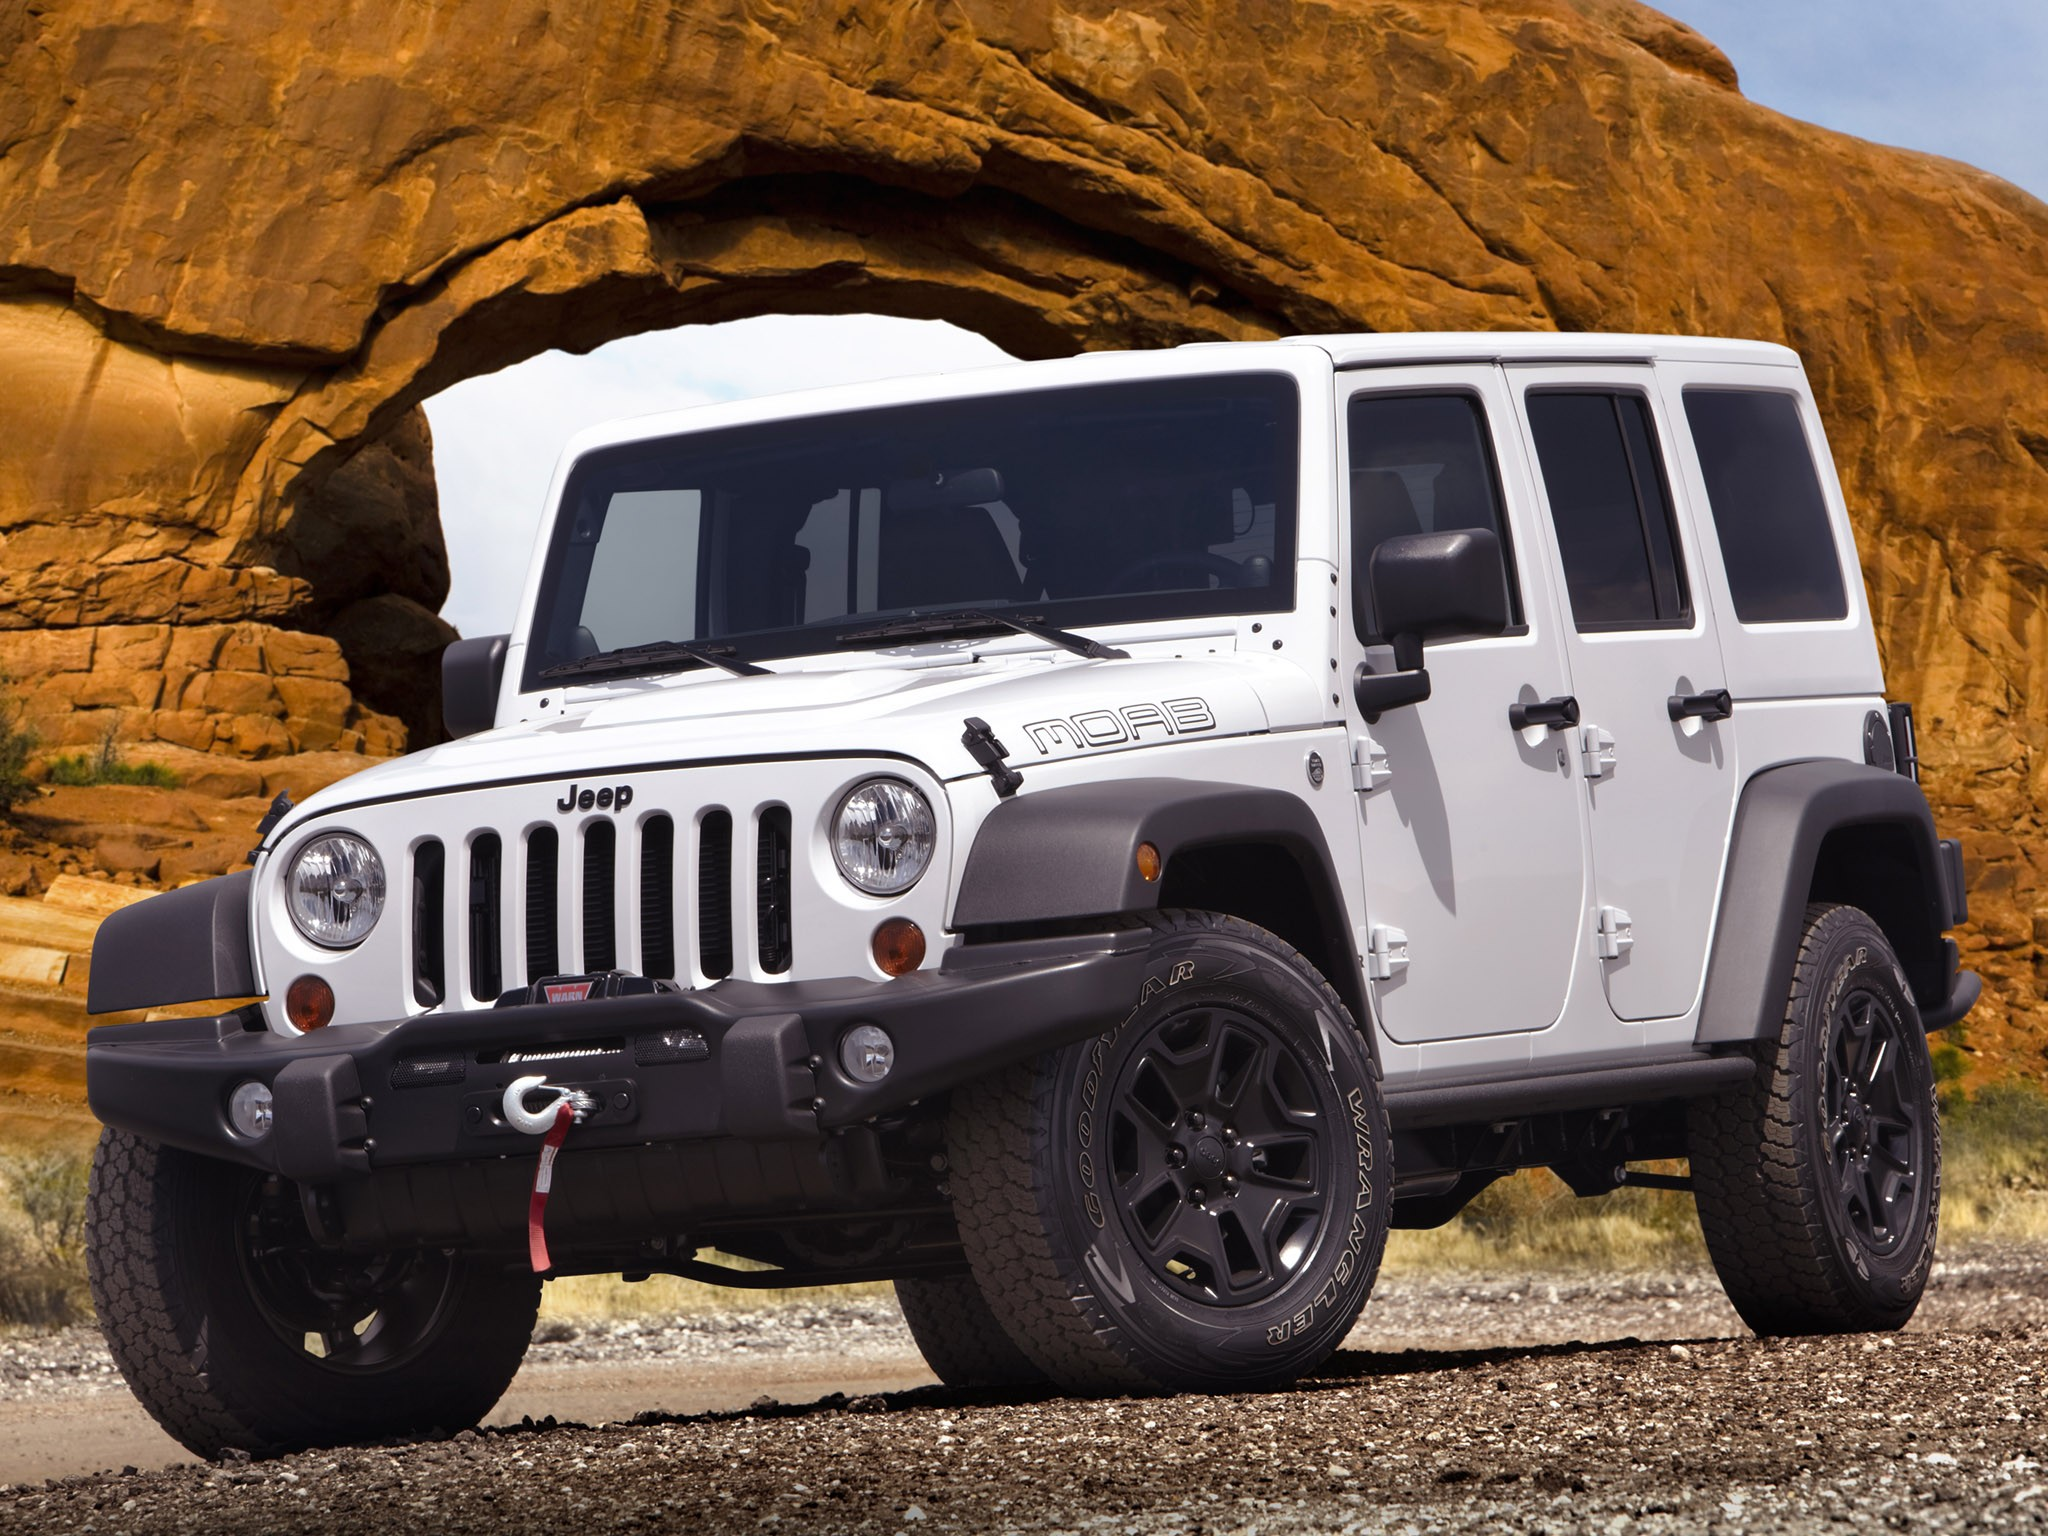 2012 Jeep Wrangler Unlimited Moab